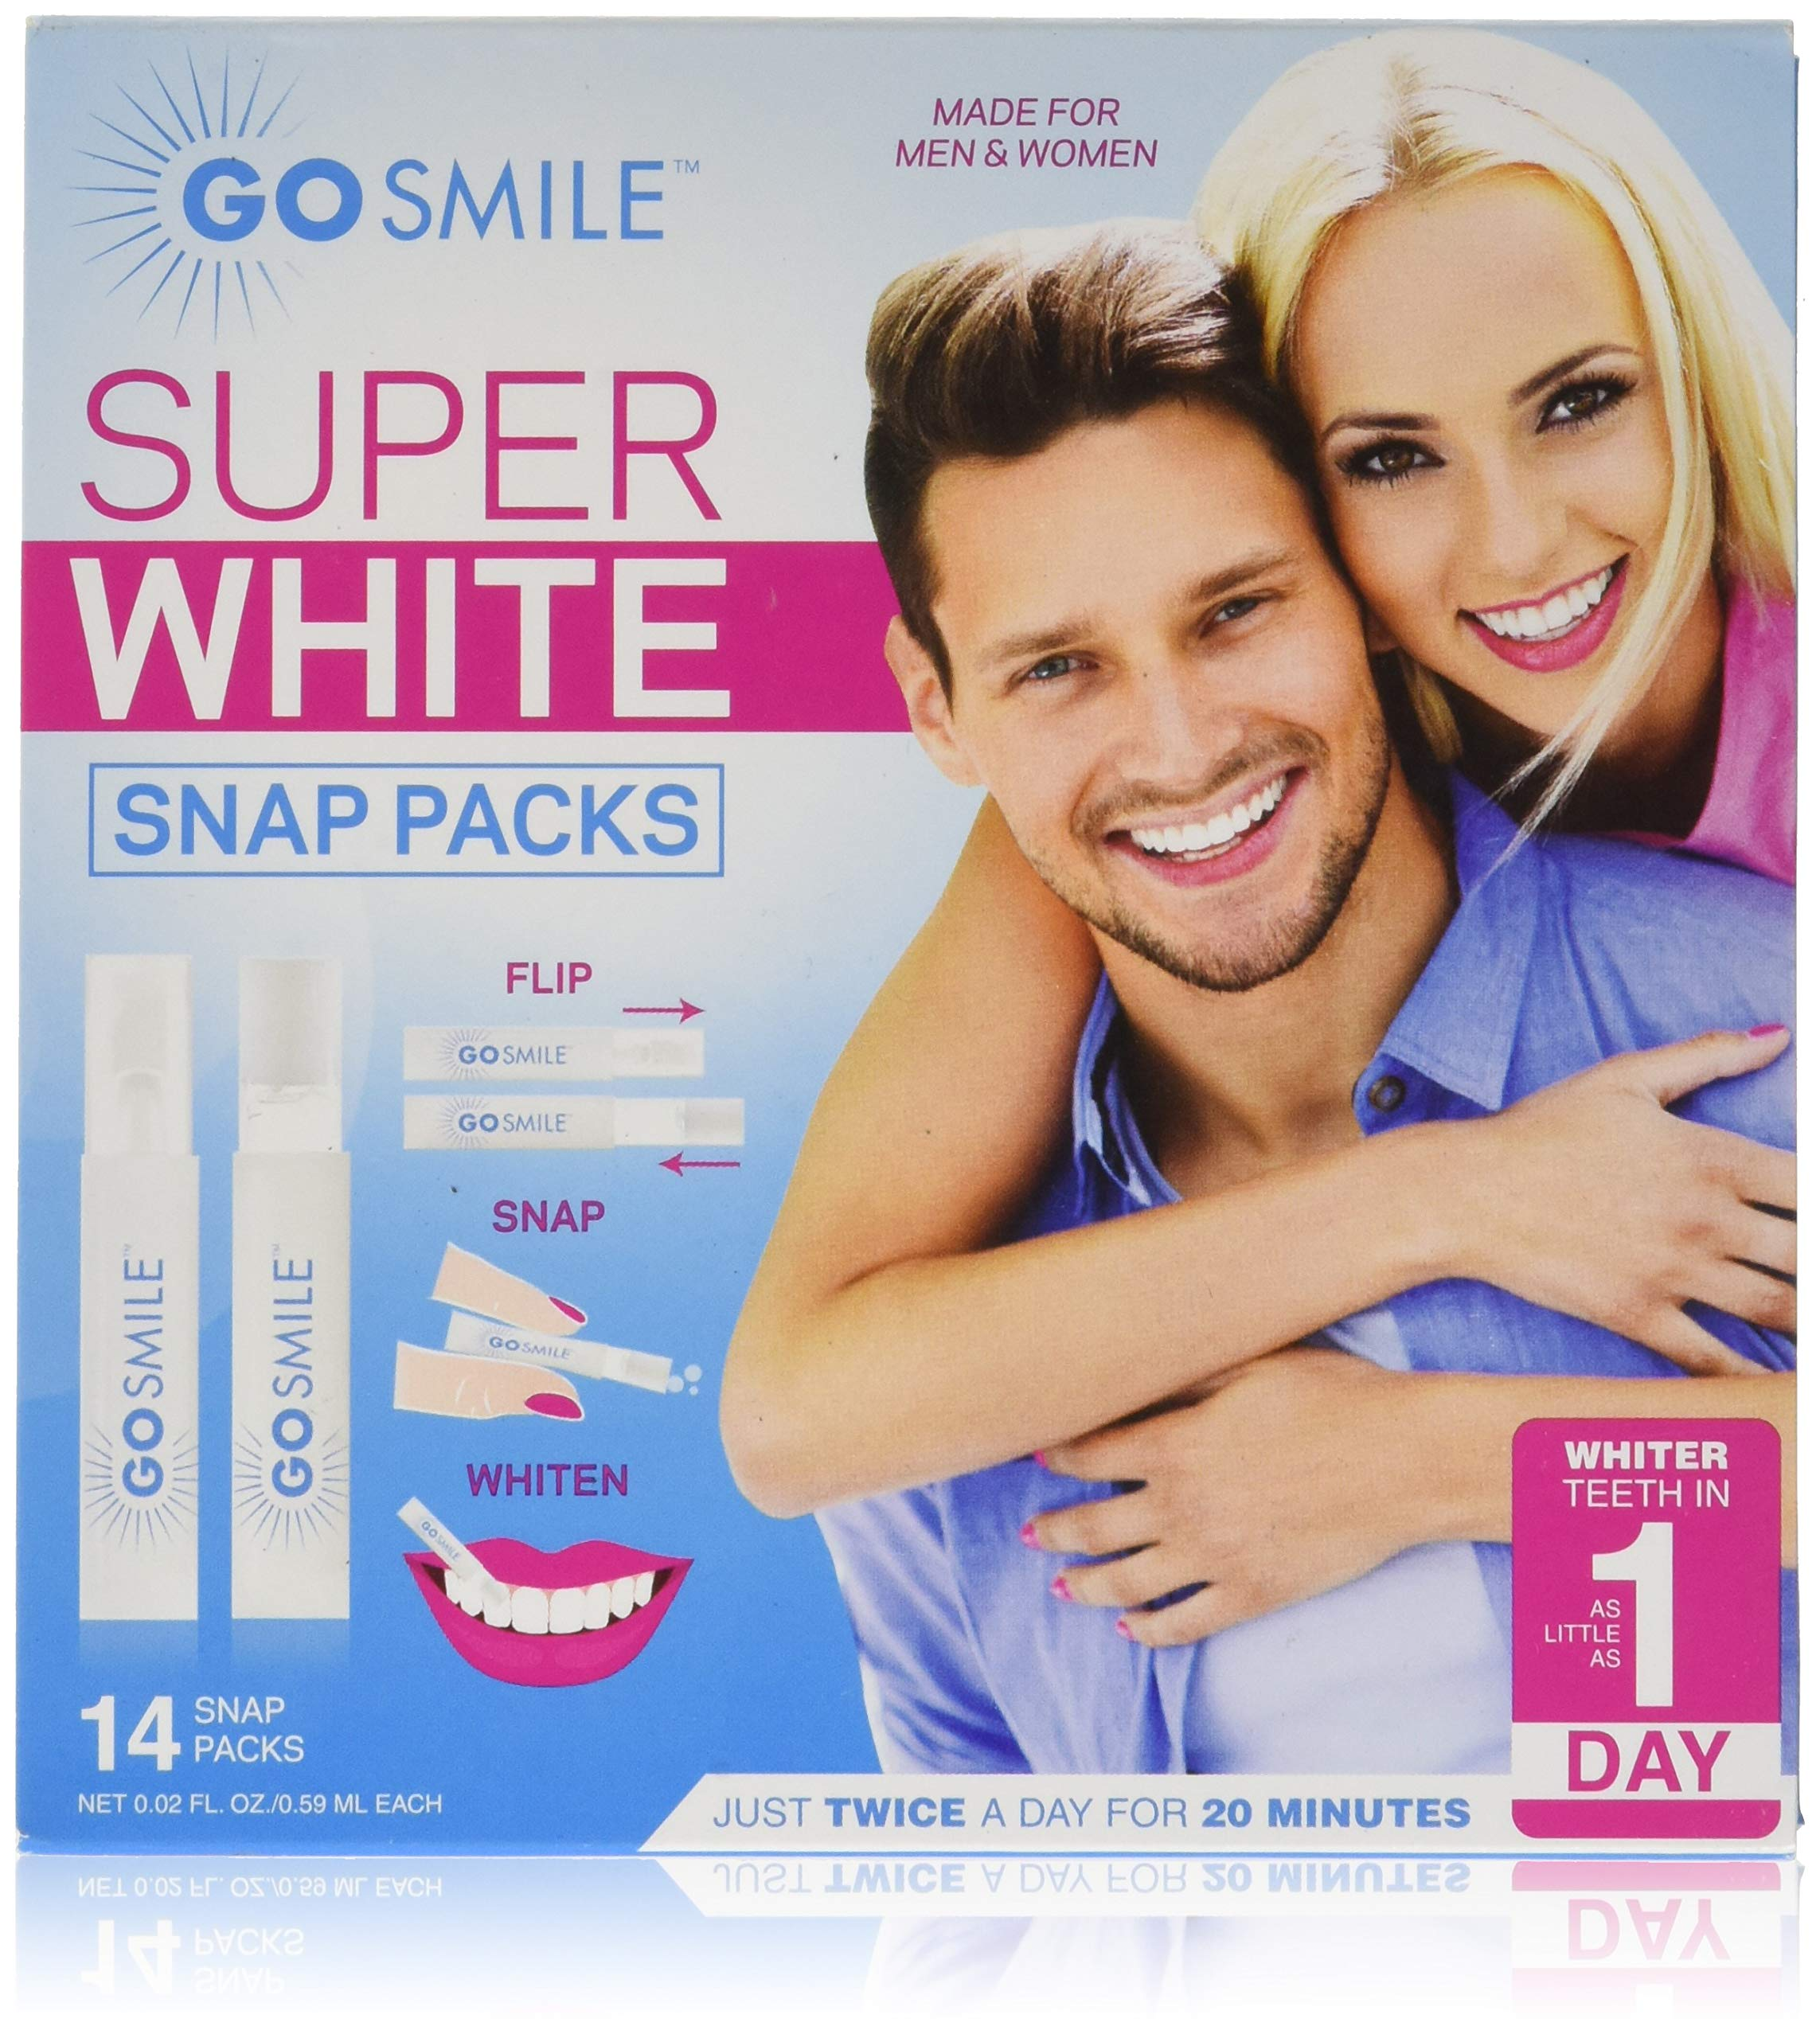 Go Smile Super White Professional Teeth Whitening The Second Kit I Received Is Snap Circuits Pro Sells For 97 95 System 14 Single Use Applicators Clinically Proven Up To 7 Shades Whiter In A Week